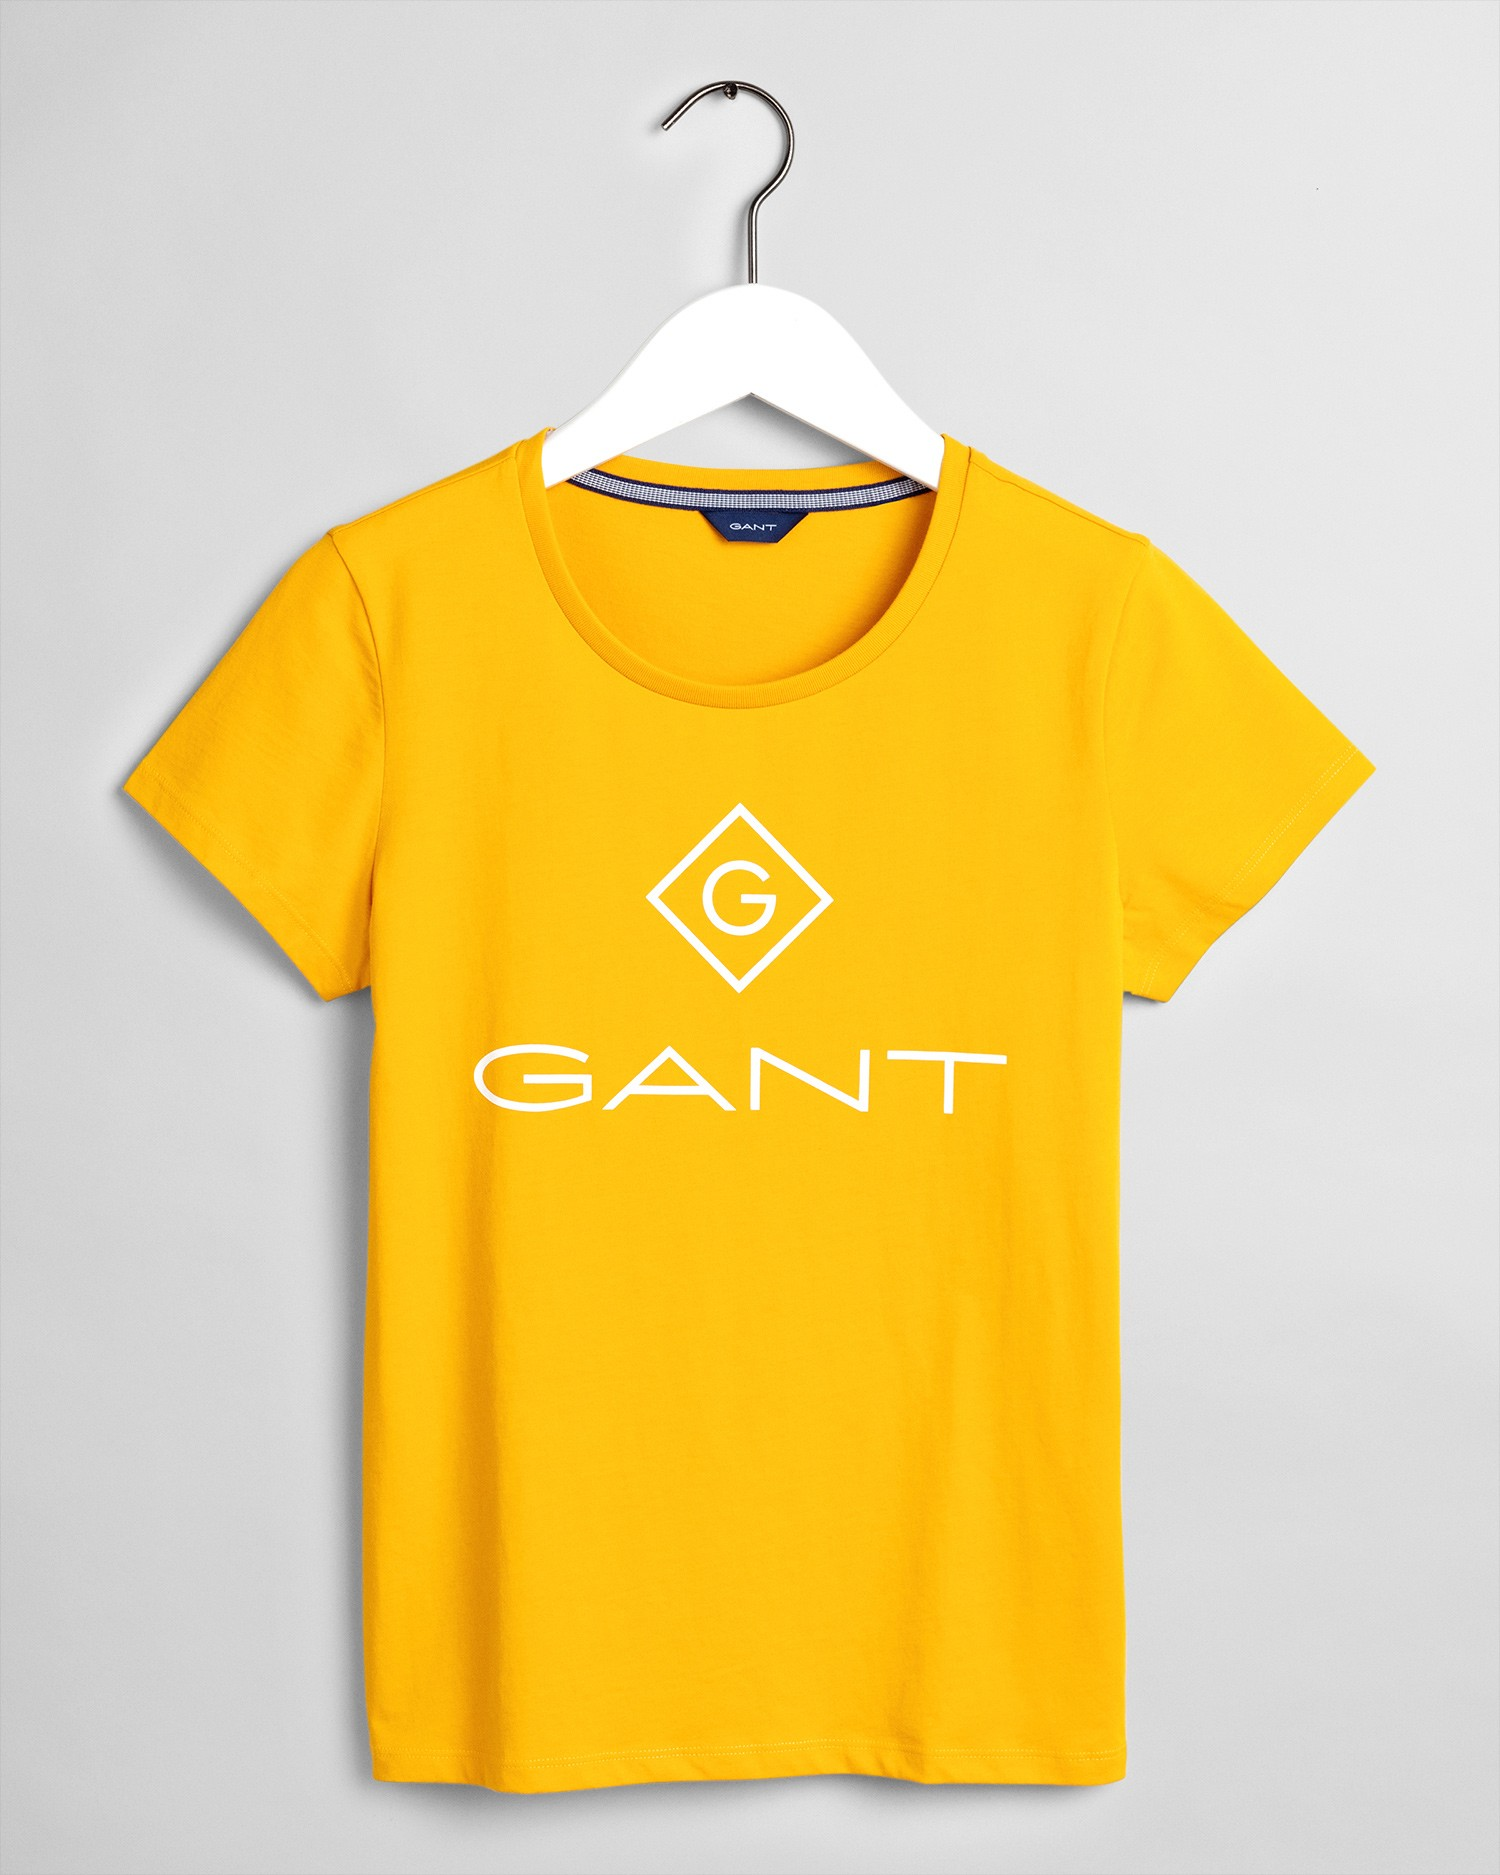 GANT T-Shirt Damski Lock Up - 4200396